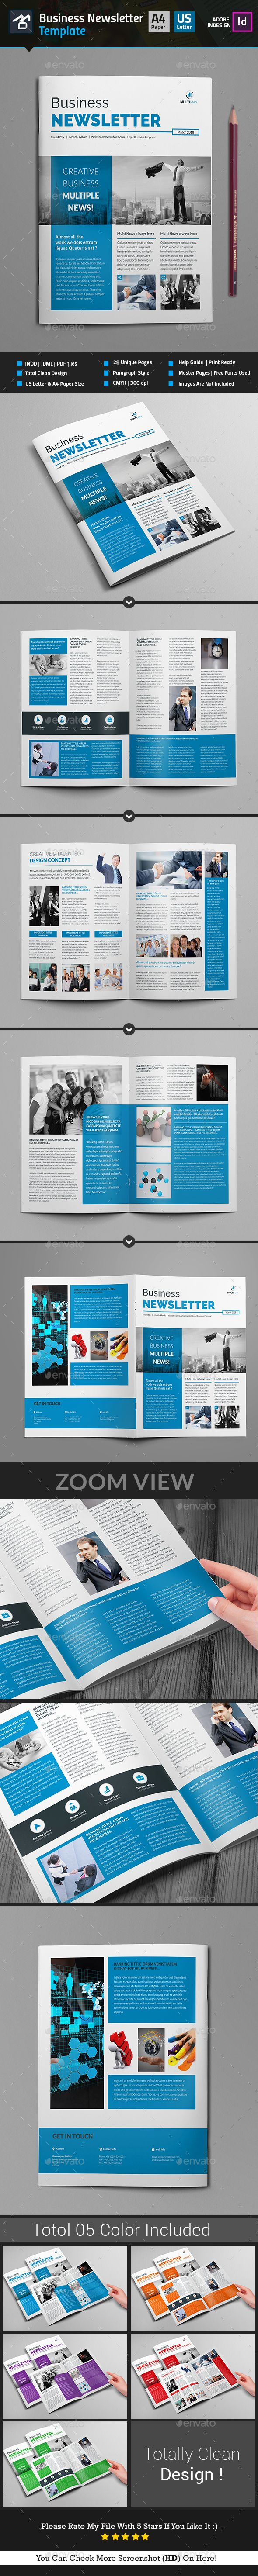 Newsletter For Corporate Business (8 Pages) - Newsletters Print Templates Download here : https://graphicriver.net/item/newsletter-for-corporate-business-8-pages/16775277?s_rank=1&ref=Al-fatih